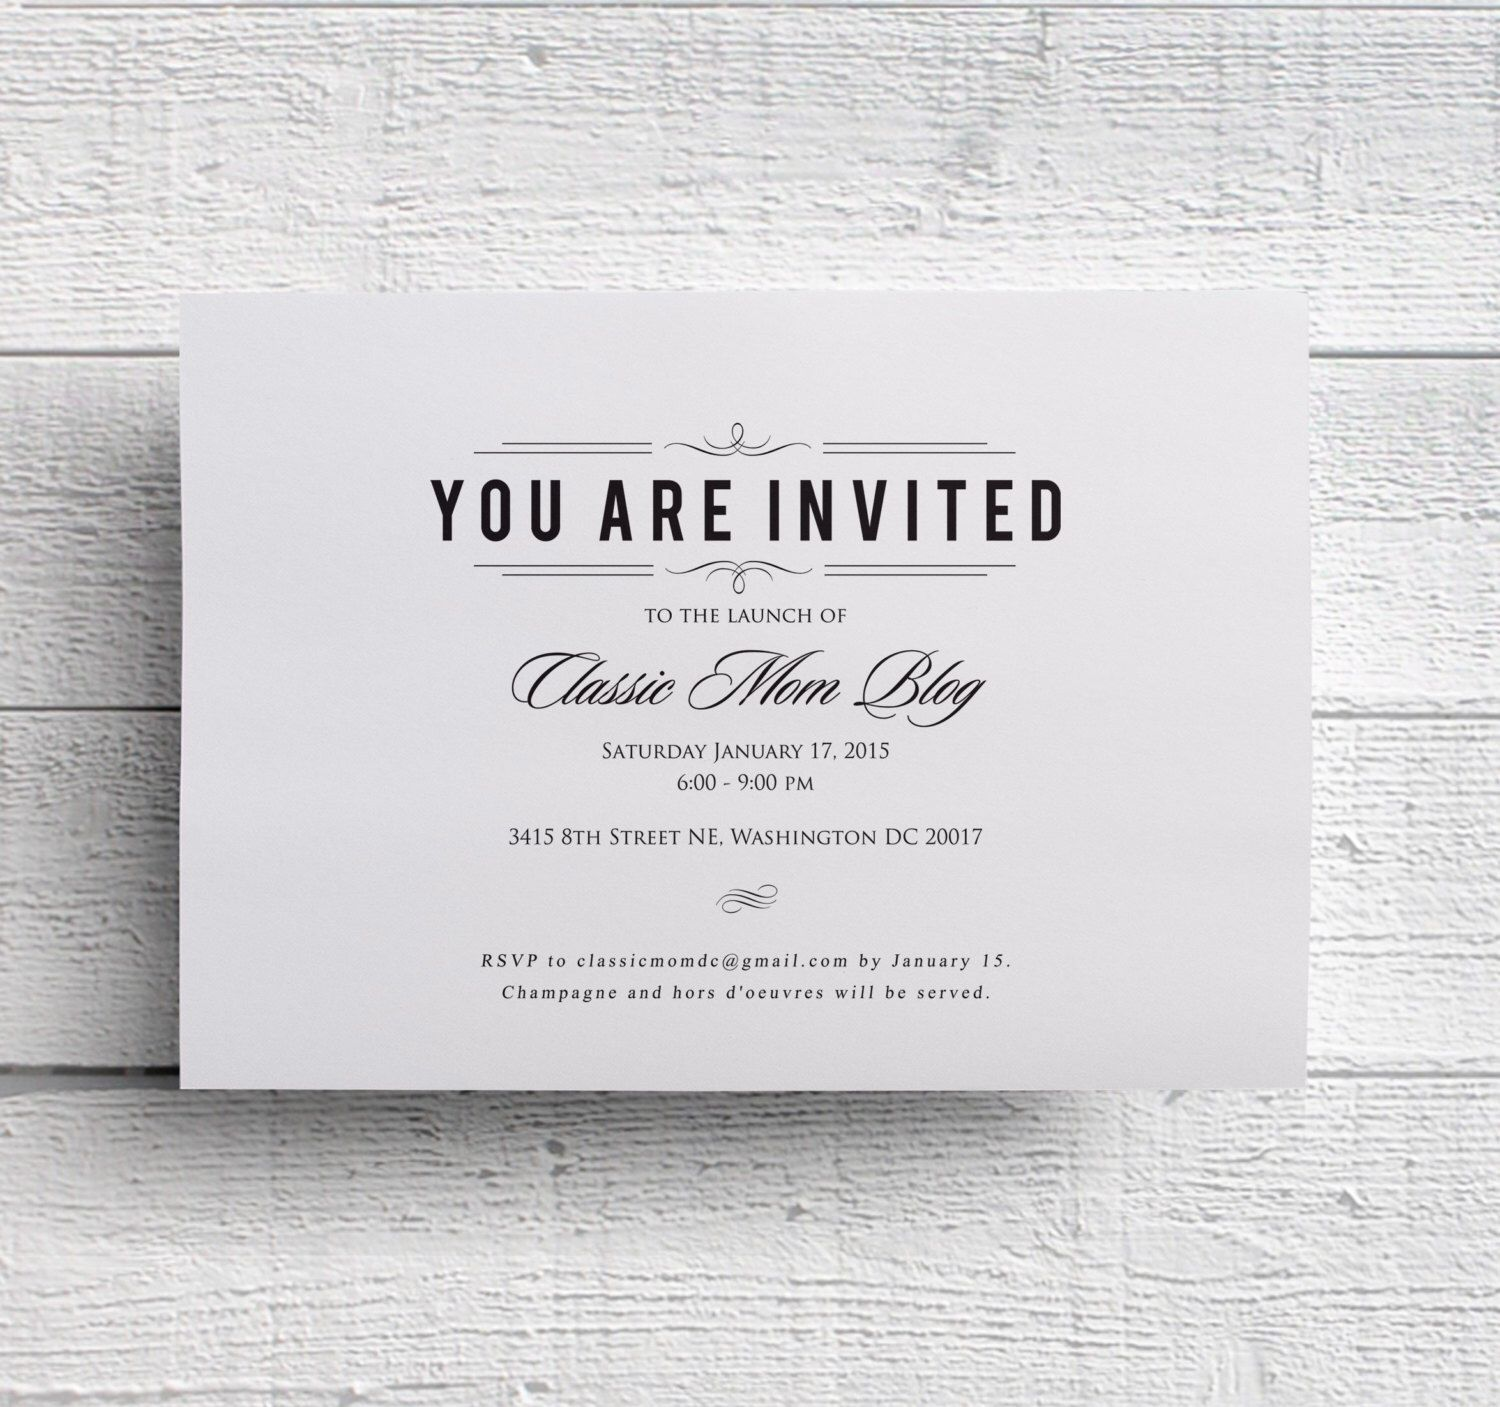 Corporate Event Invitation Template